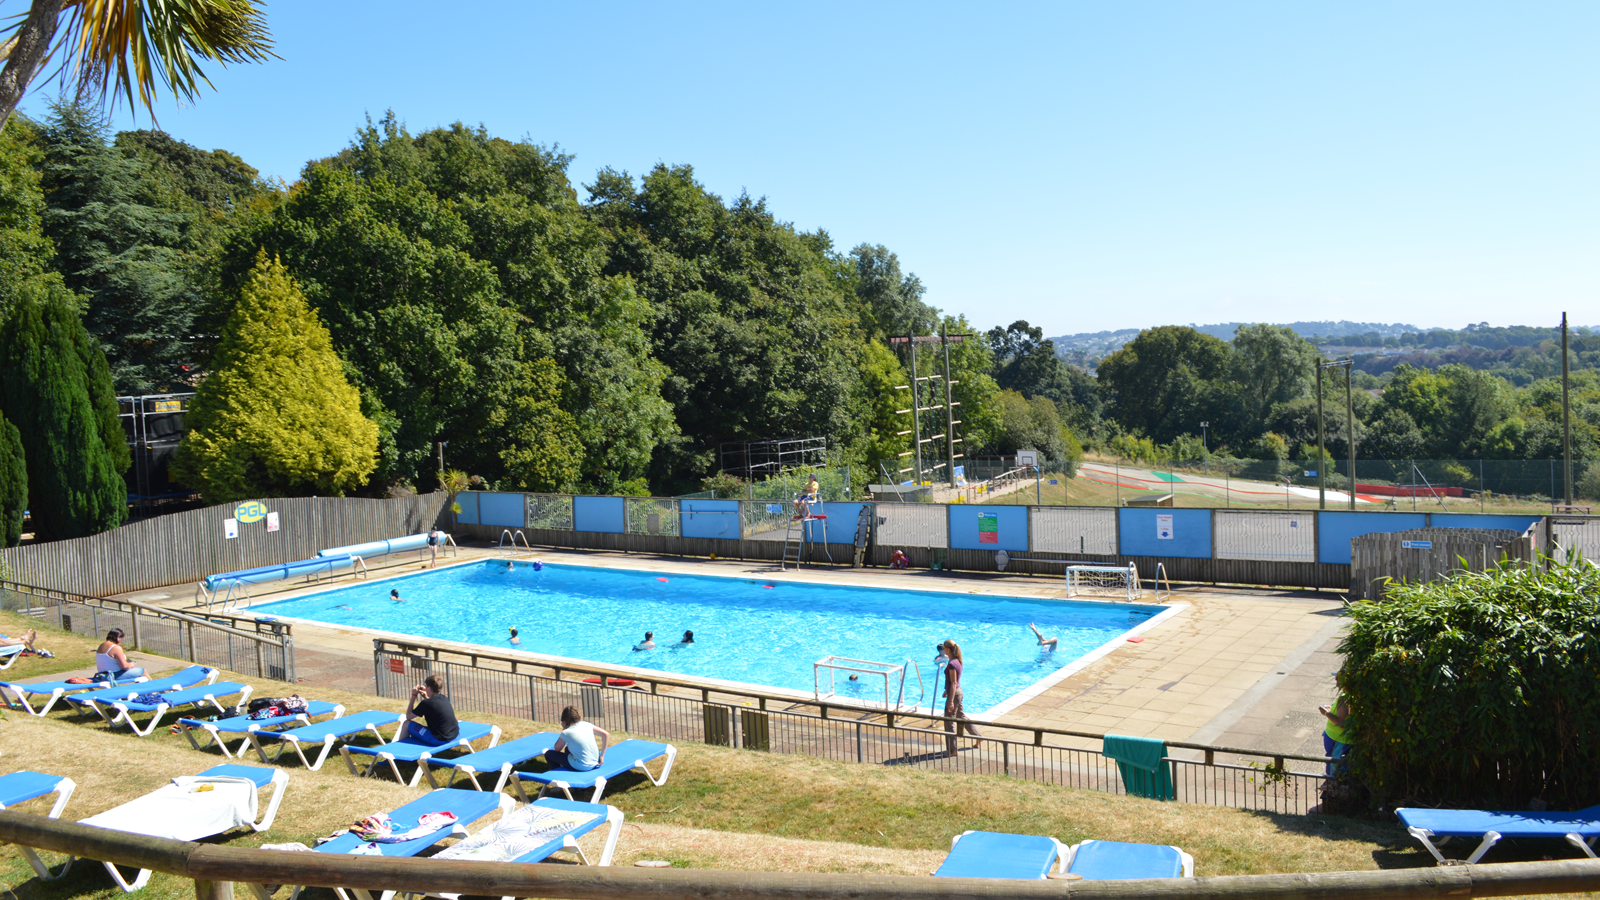 Family activity adventure holidays in devon at pgl barton hall for Barton swimming pool timetable